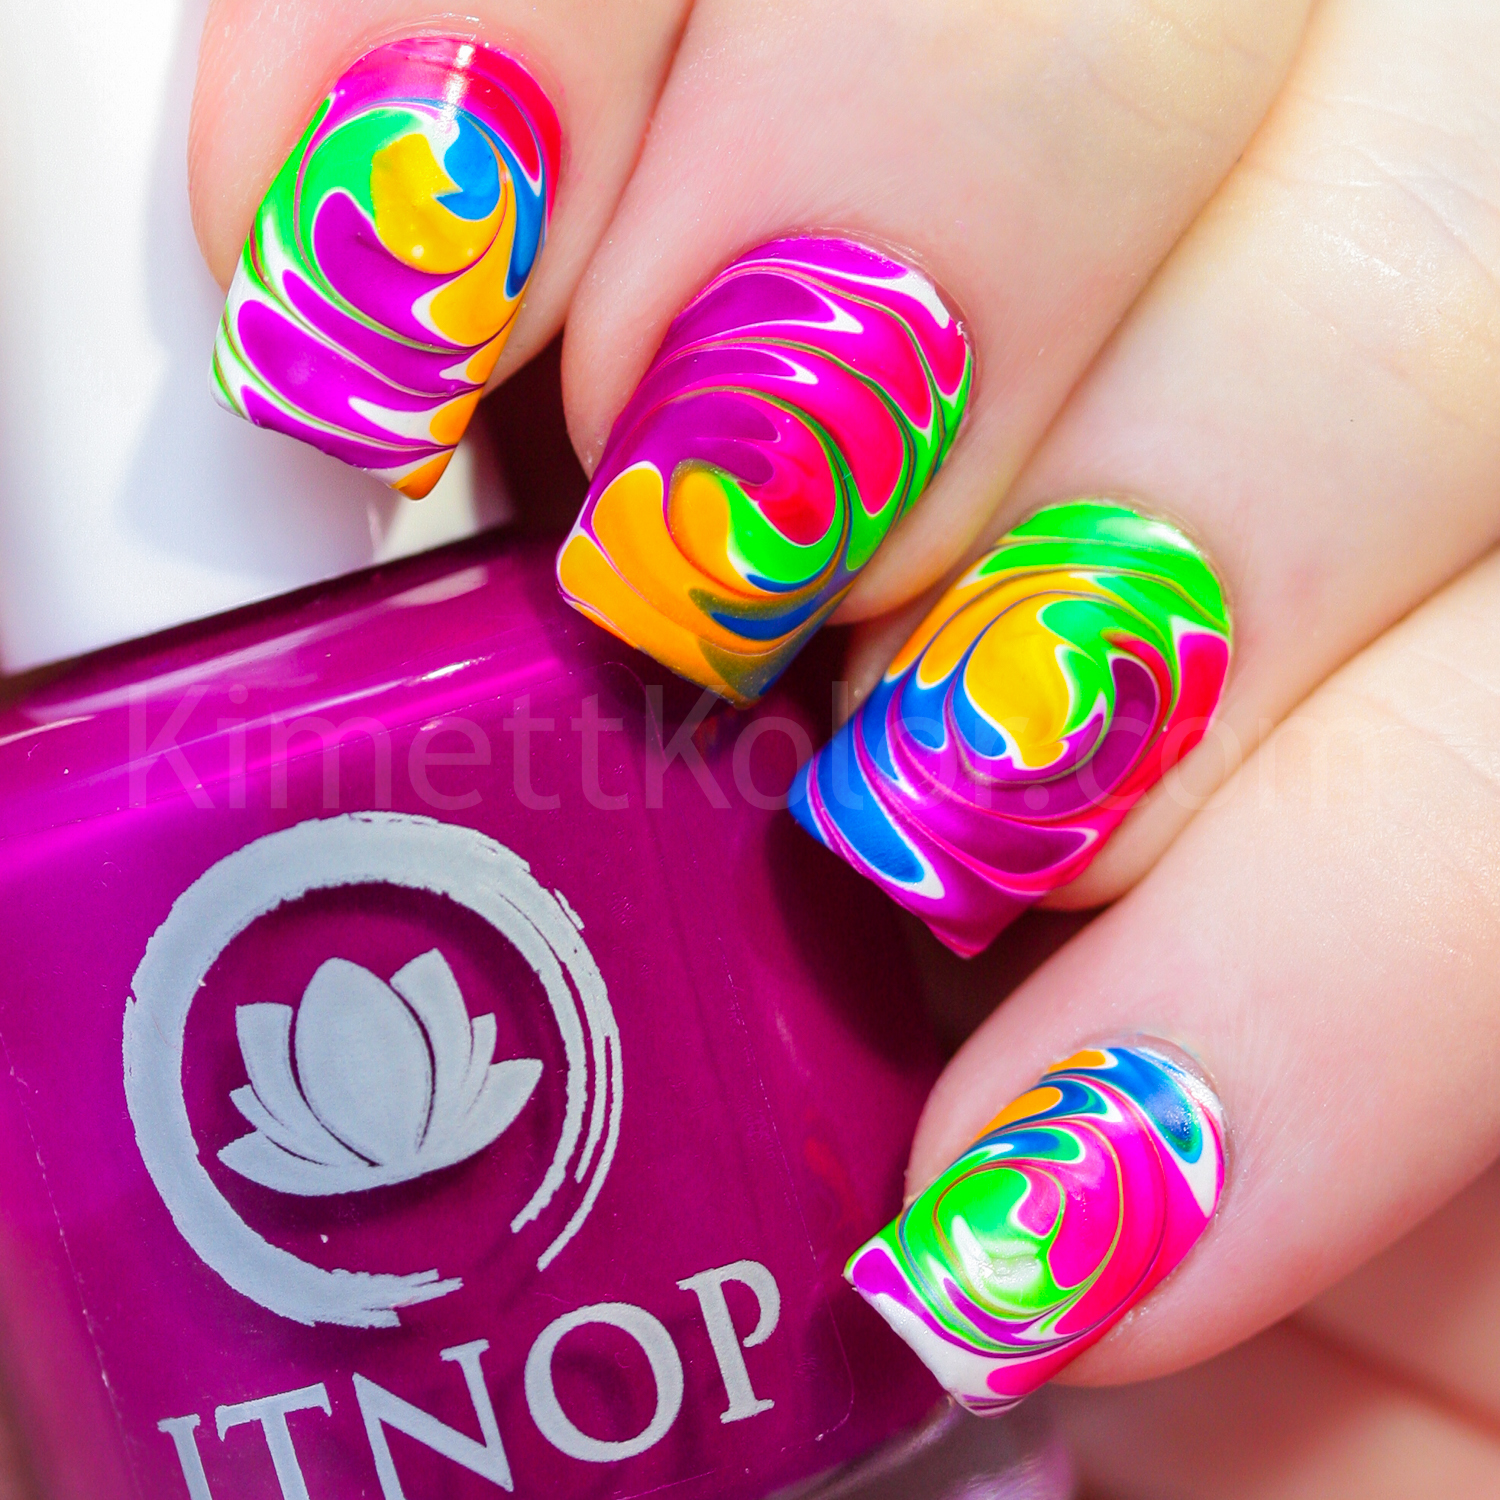 KimettKolor Top Ten Nail Art 2016